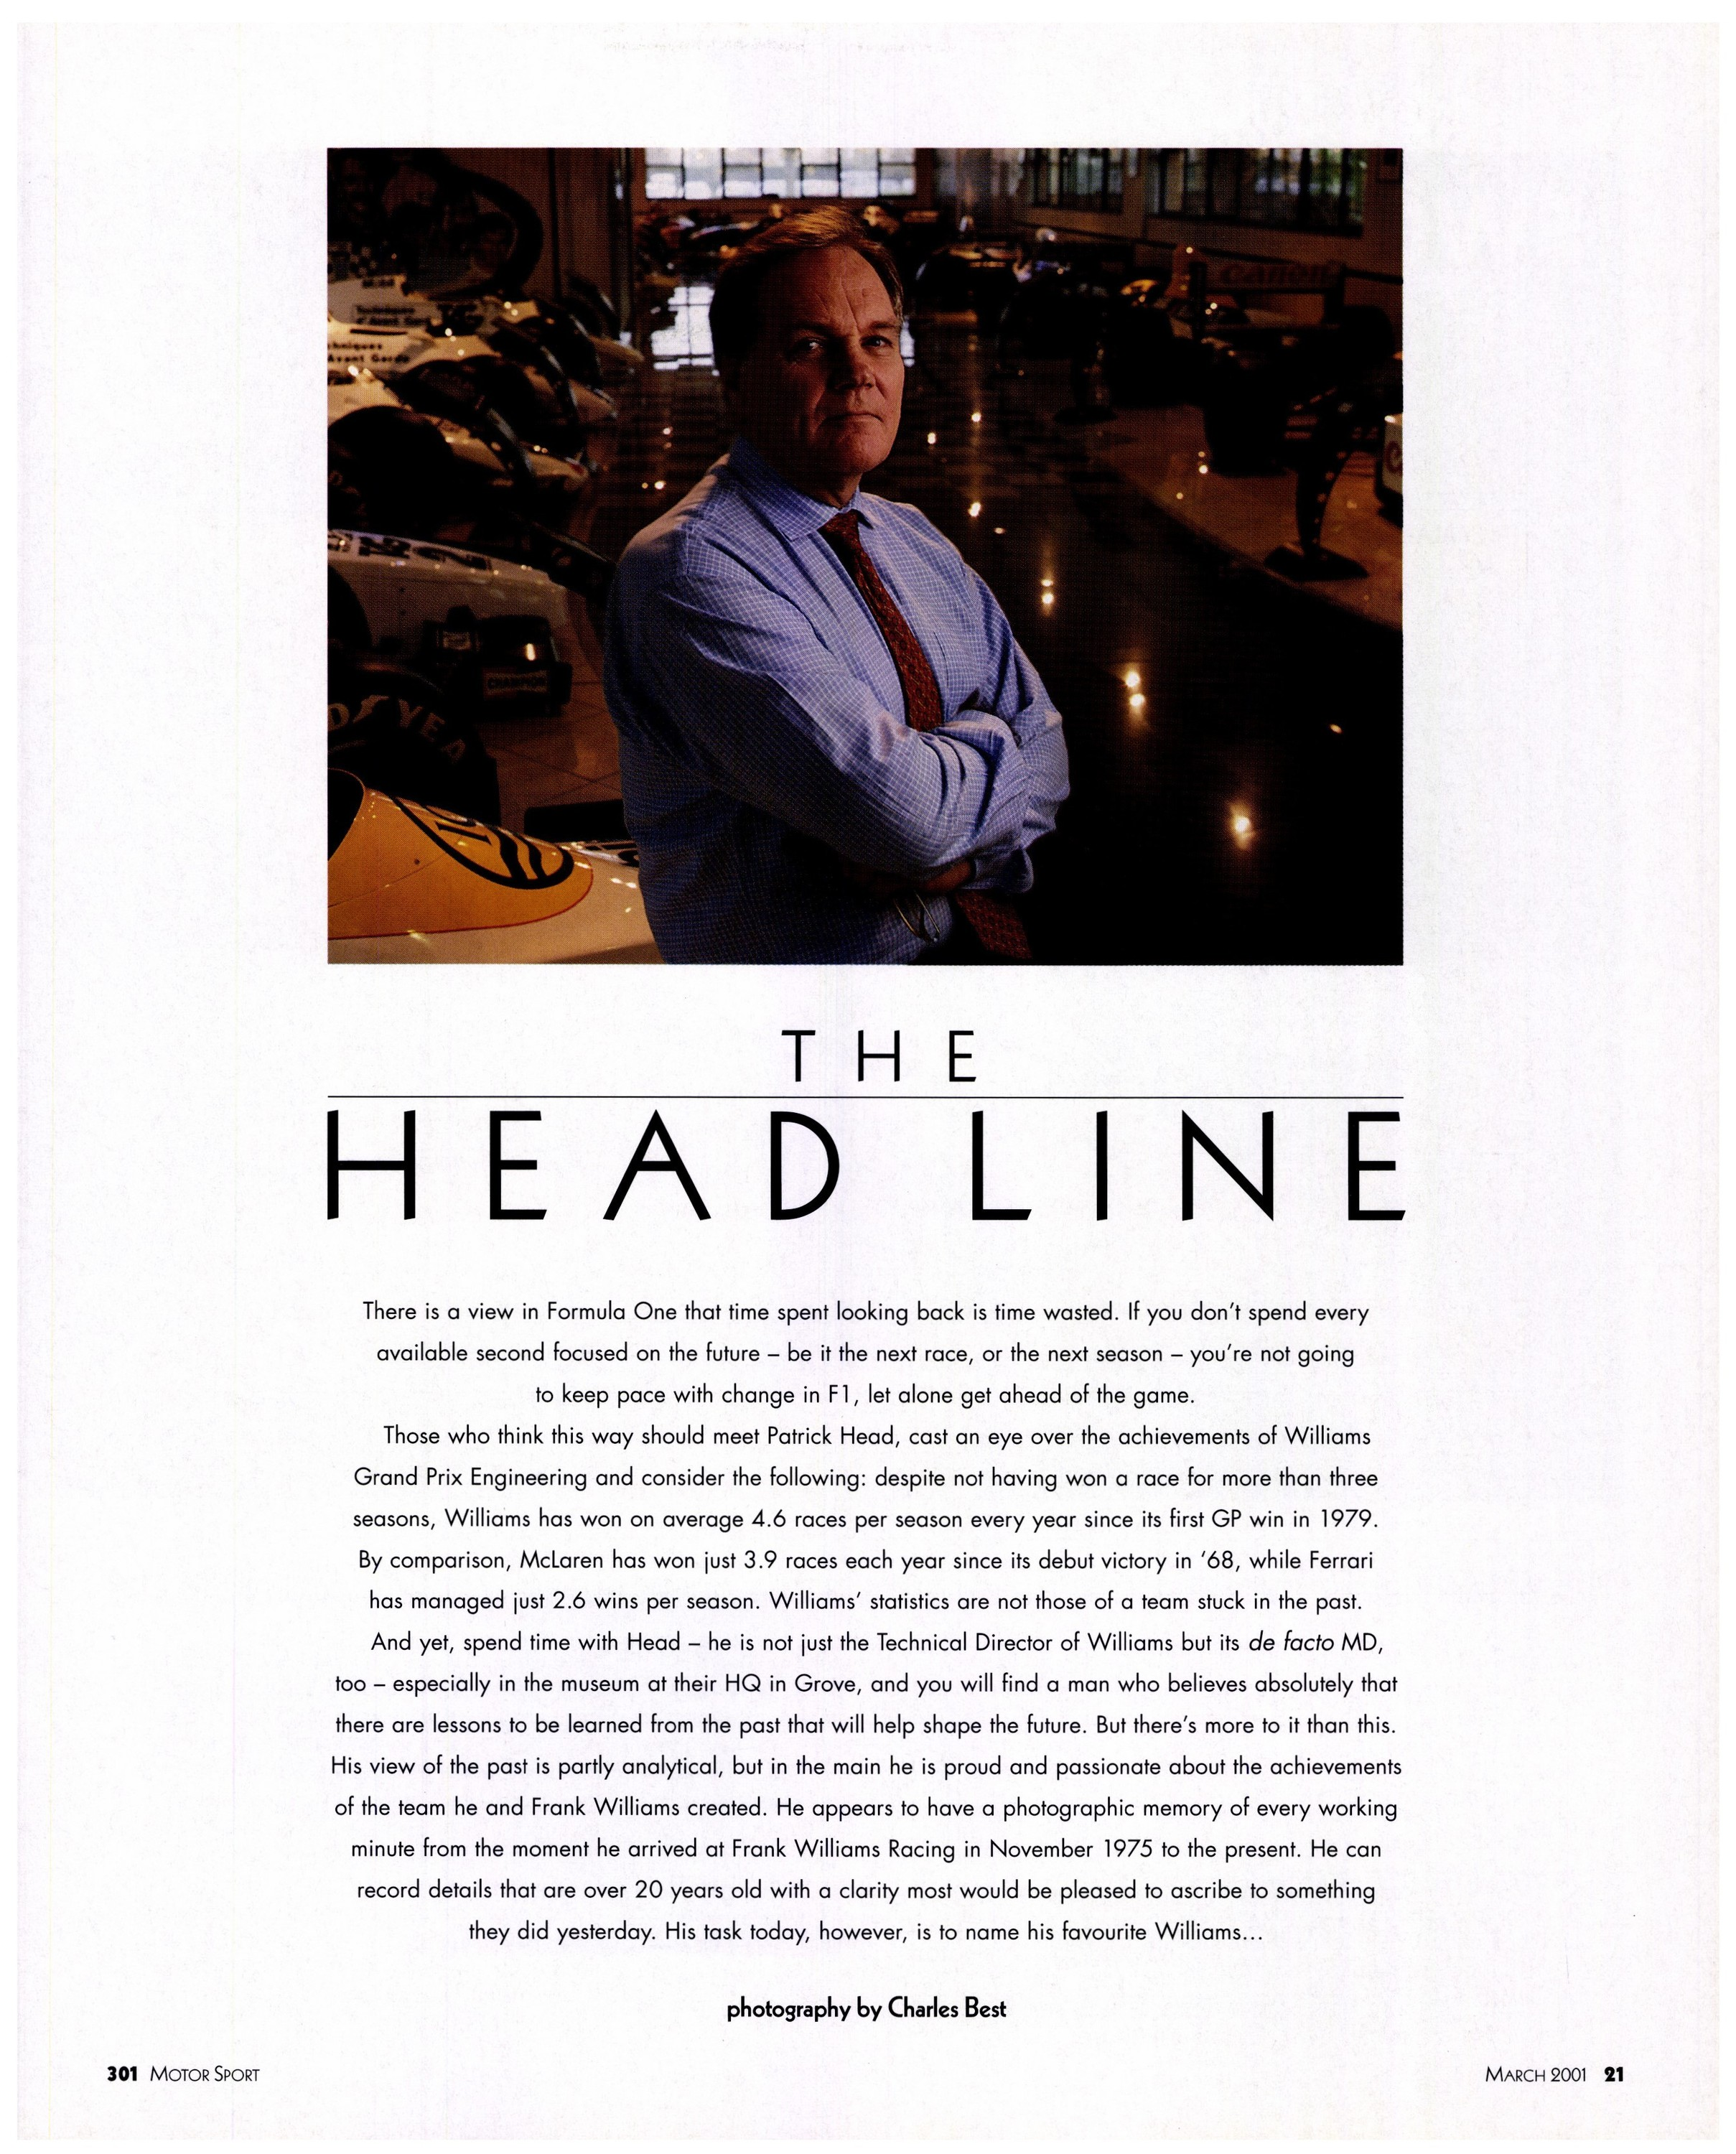 the head line image